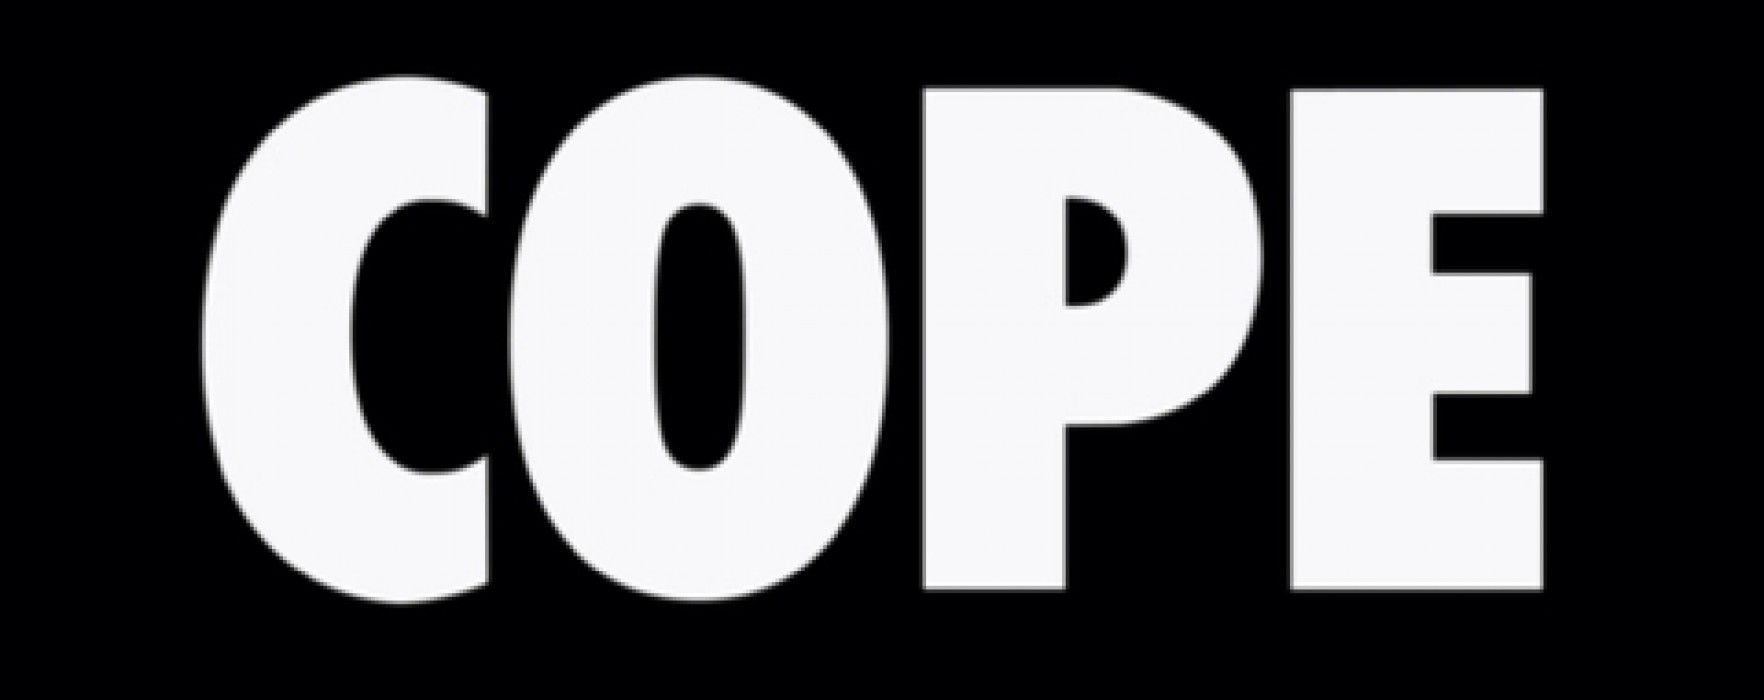 Manchester Orchestra – Cope | Music Review